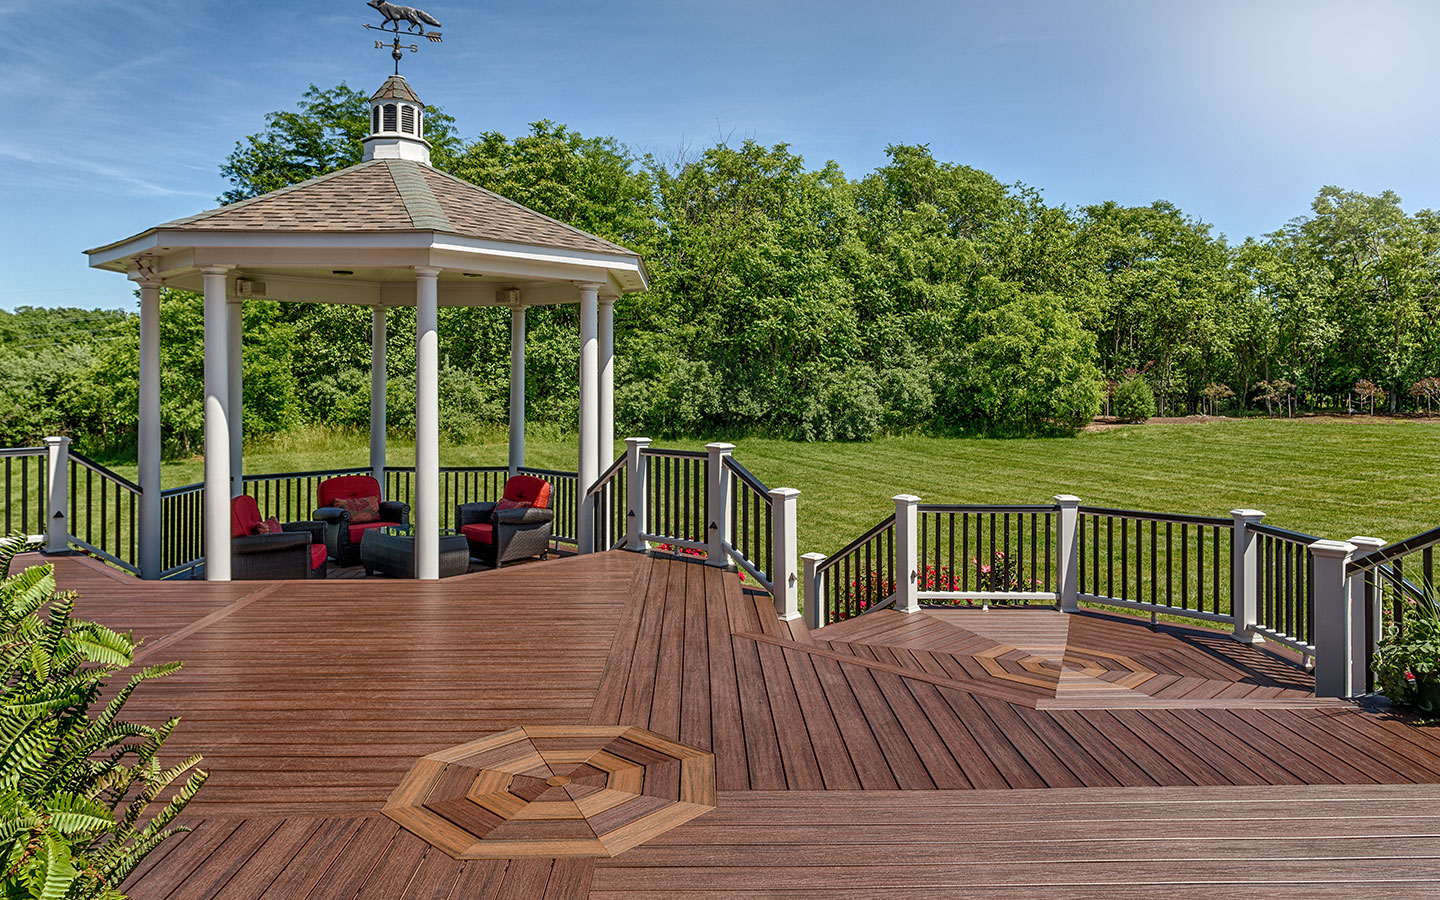 An overlook deck design with a gazebo extends over a lush yard.